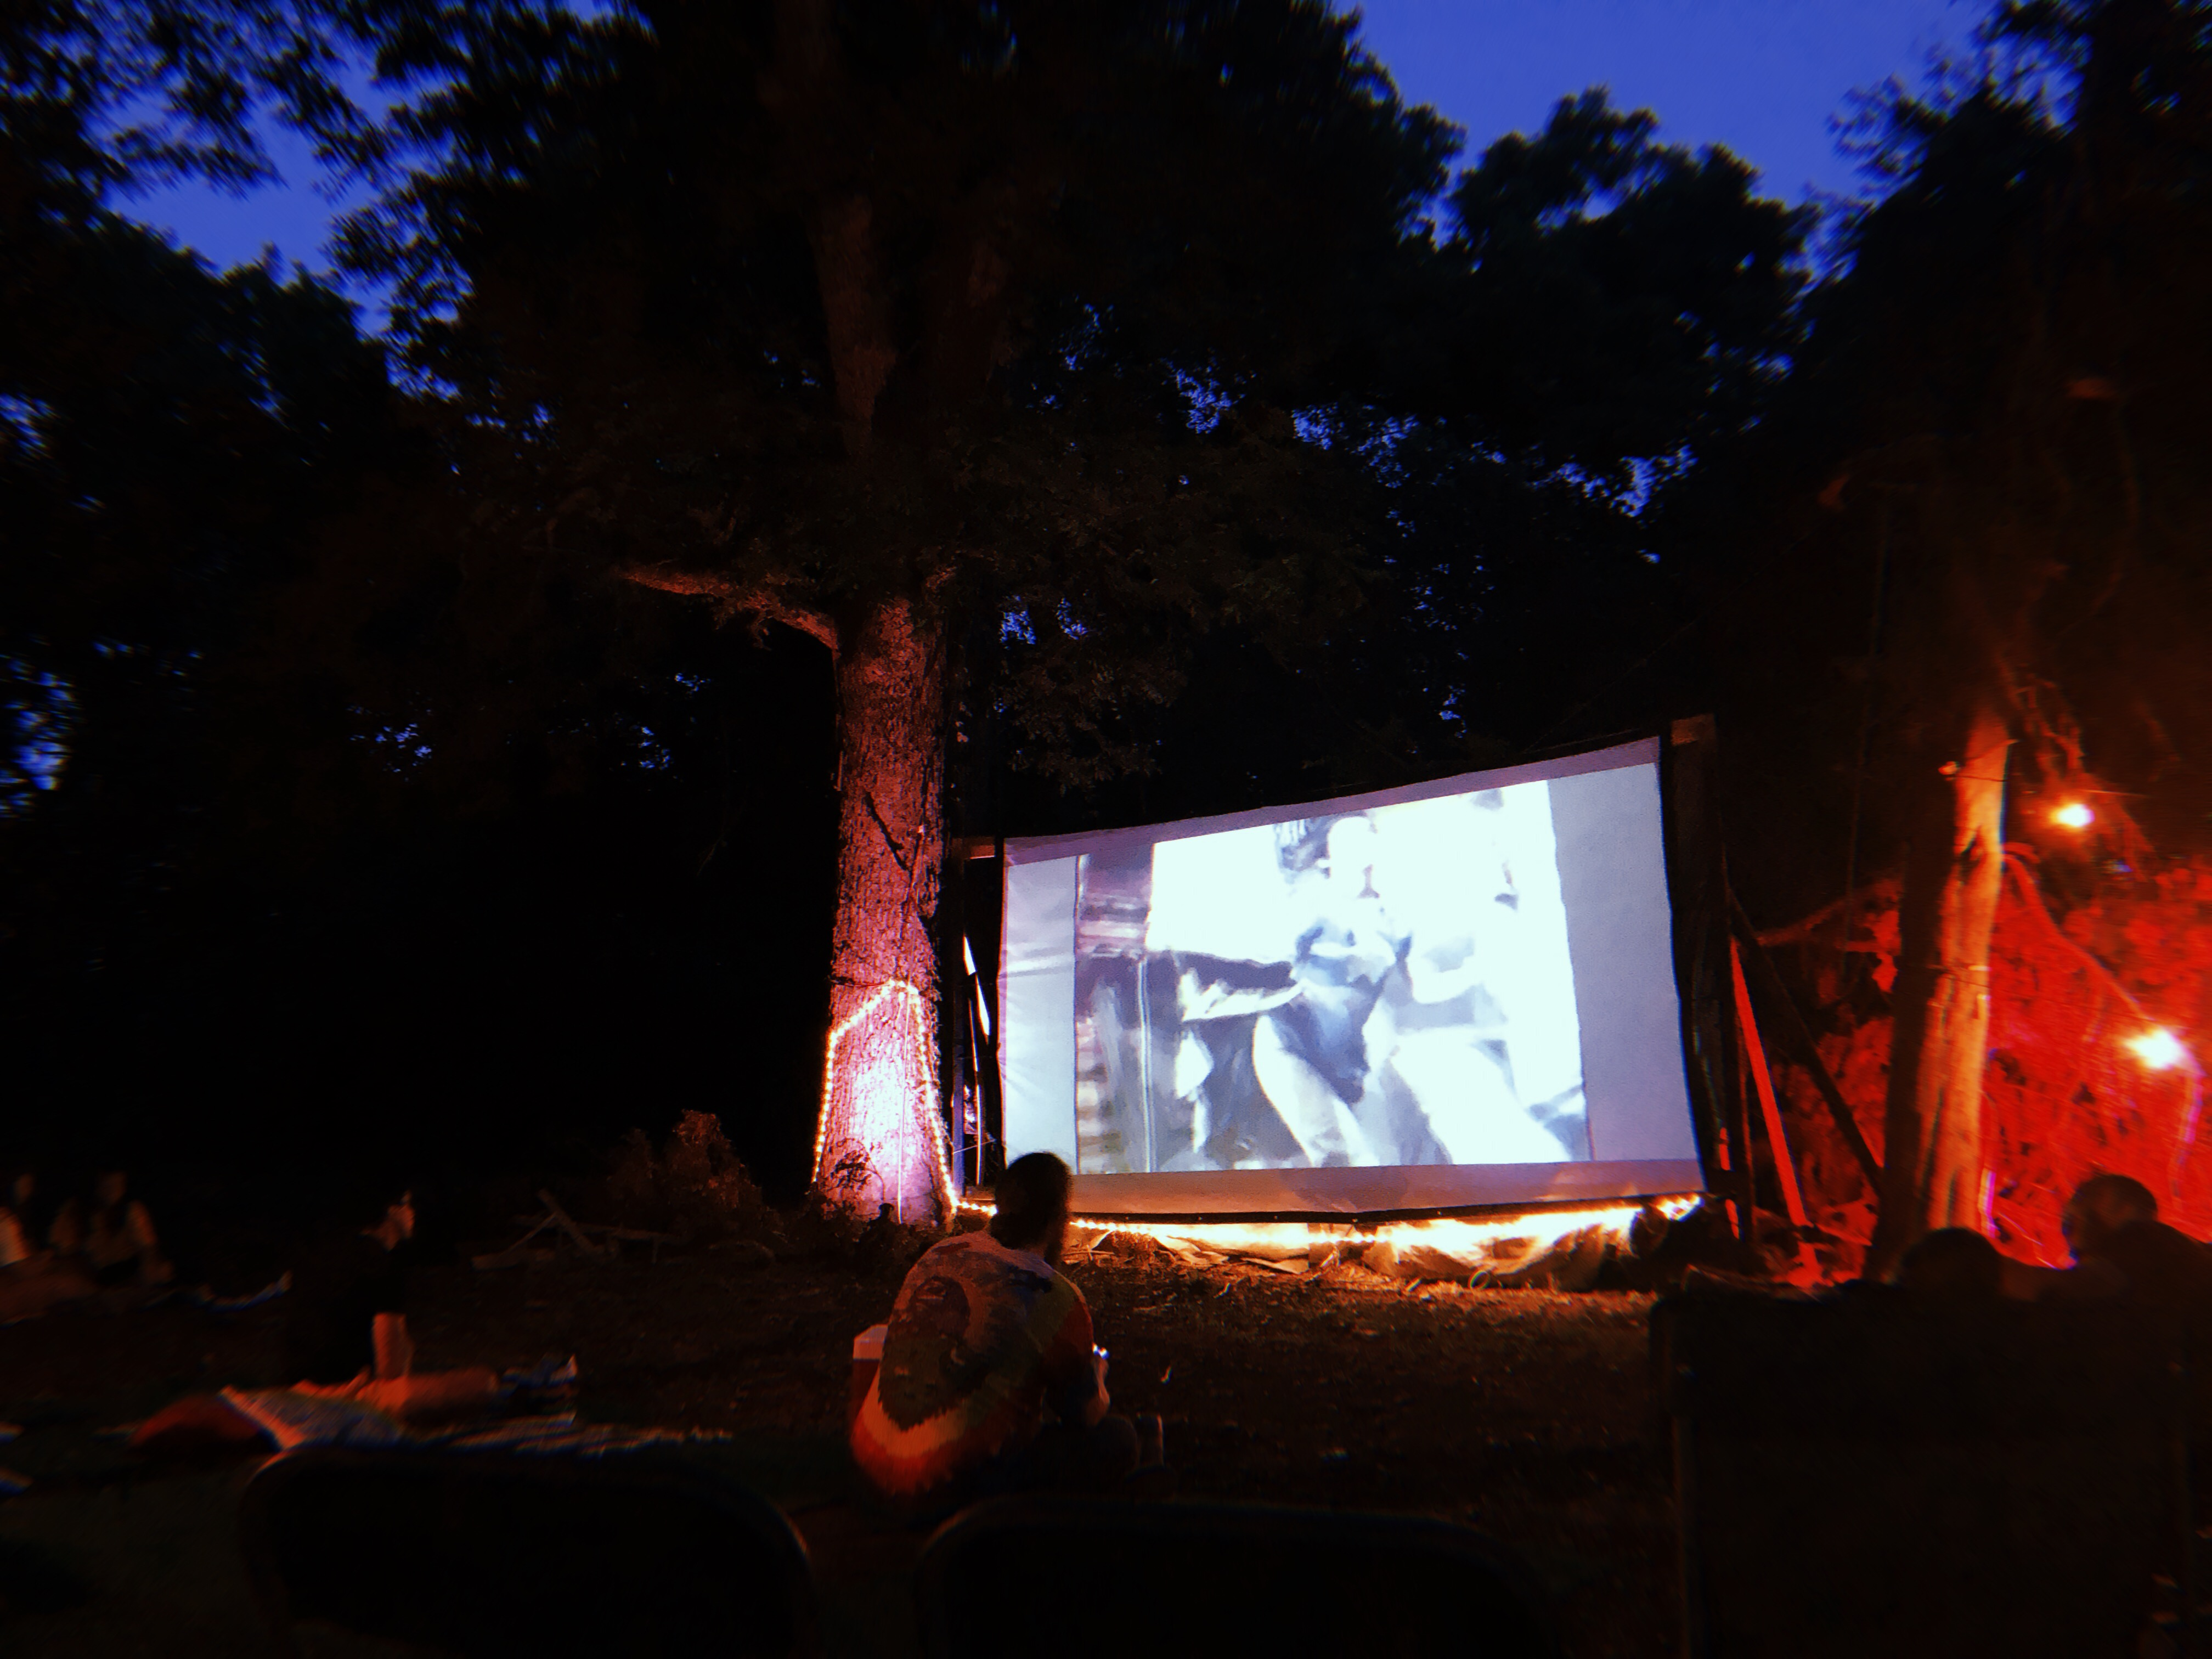 A movie screen in a forest with lanterns.